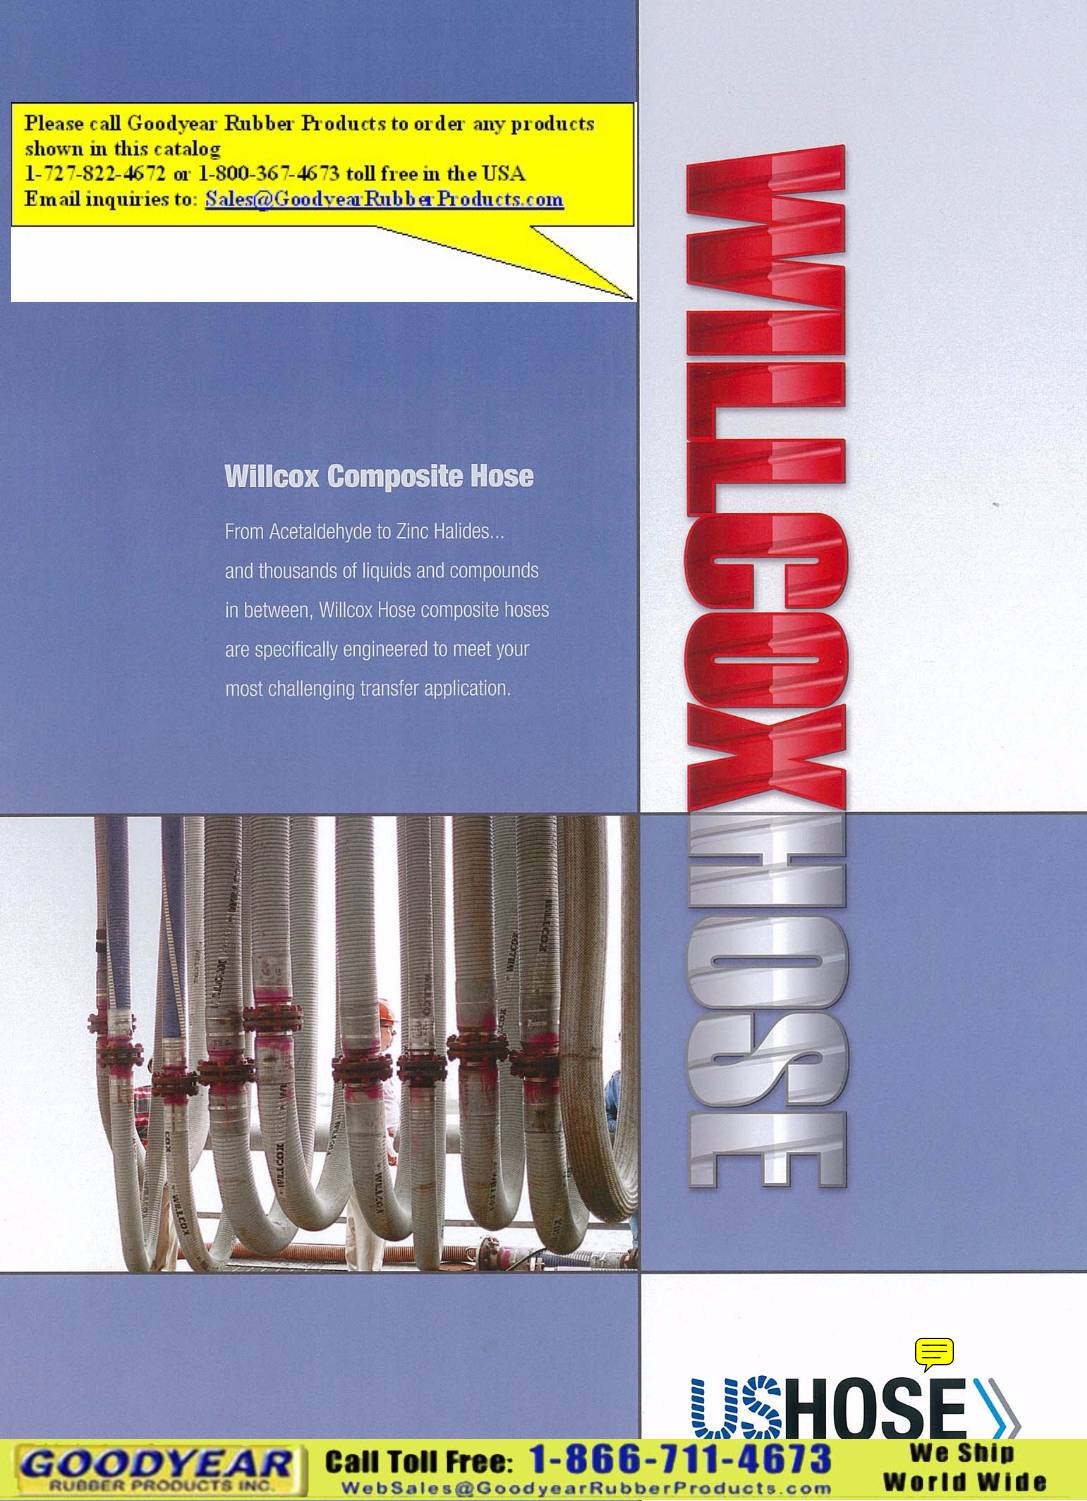 Tift Willcox Composite Hose